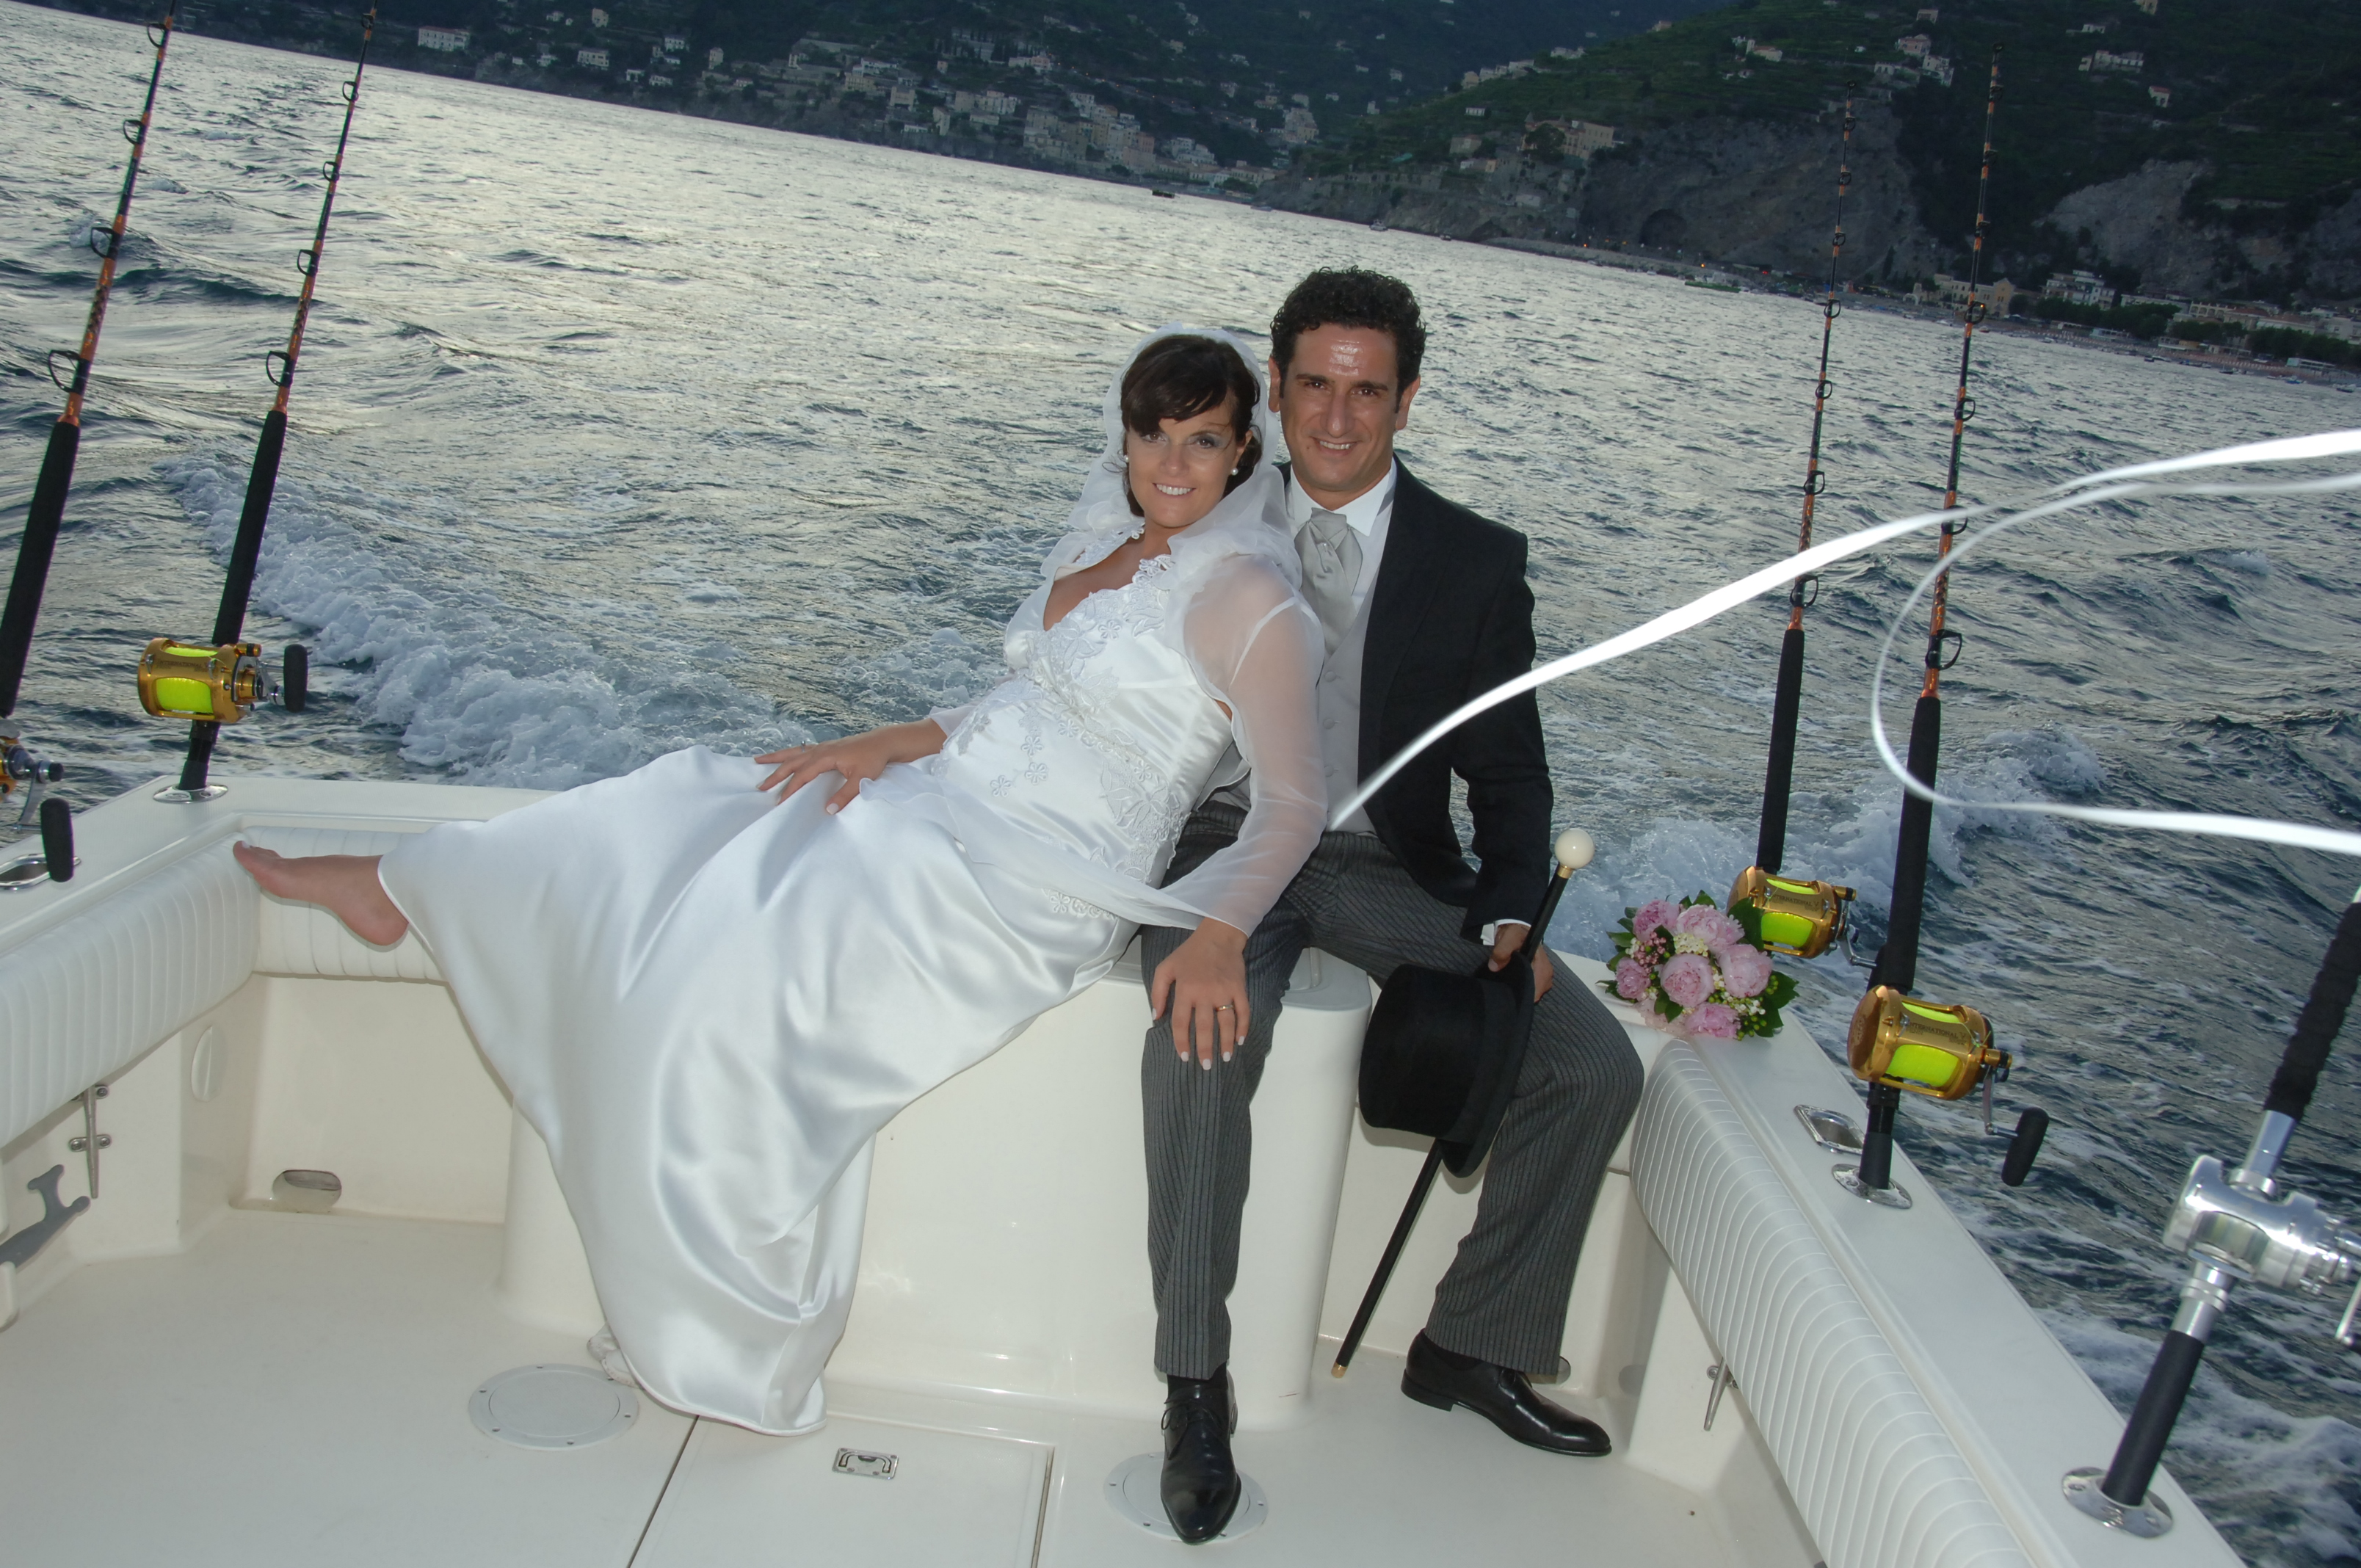 http://www.weddingamalfi.com/wp-content/uploads/Enza-and-Mario-18.jpg